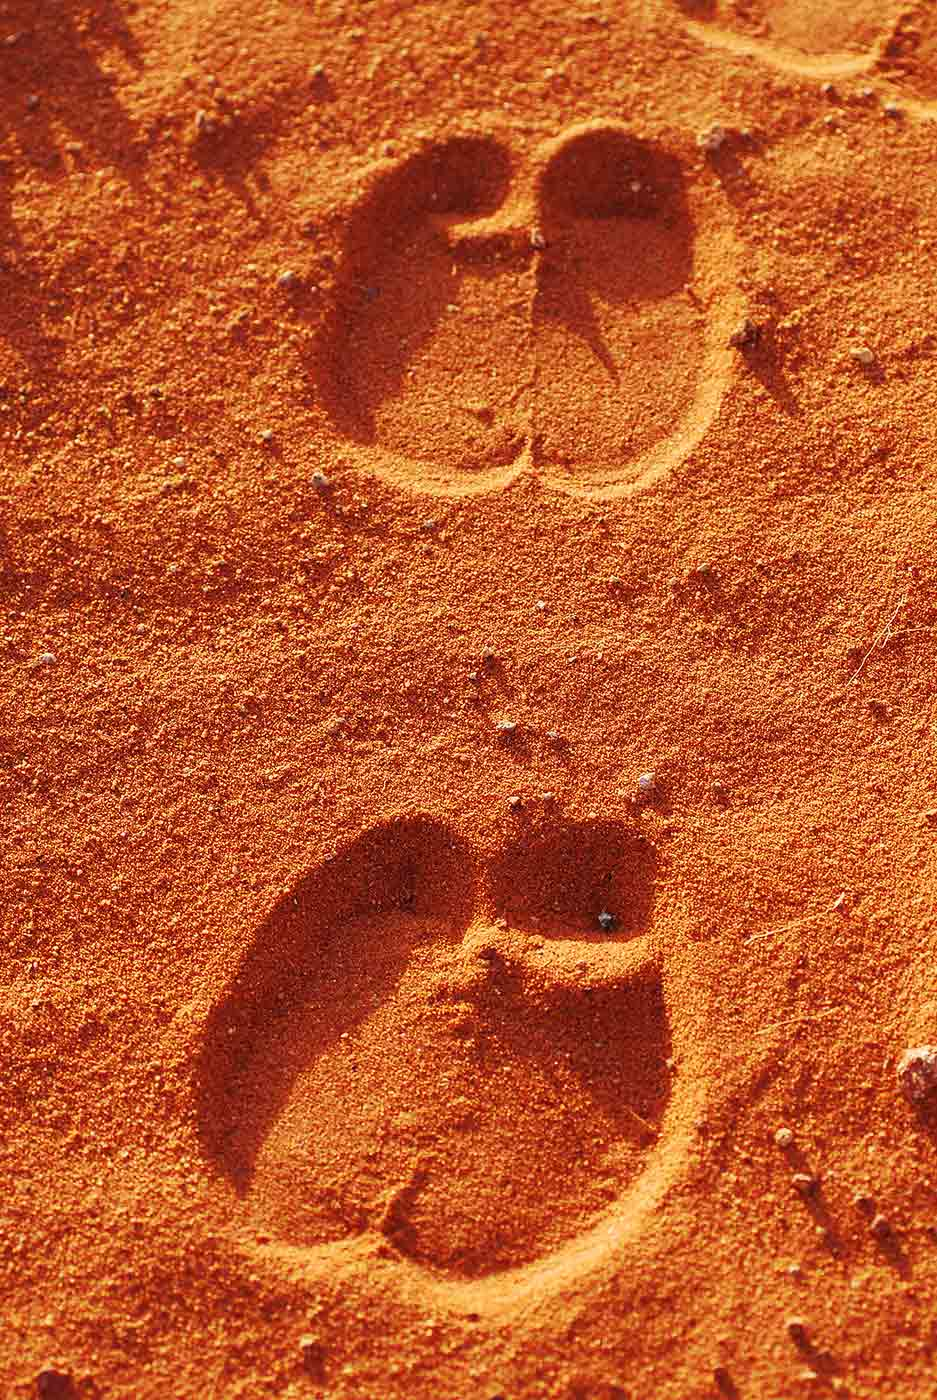 Colour photo of camel tracks in the sand. - click to view larger image